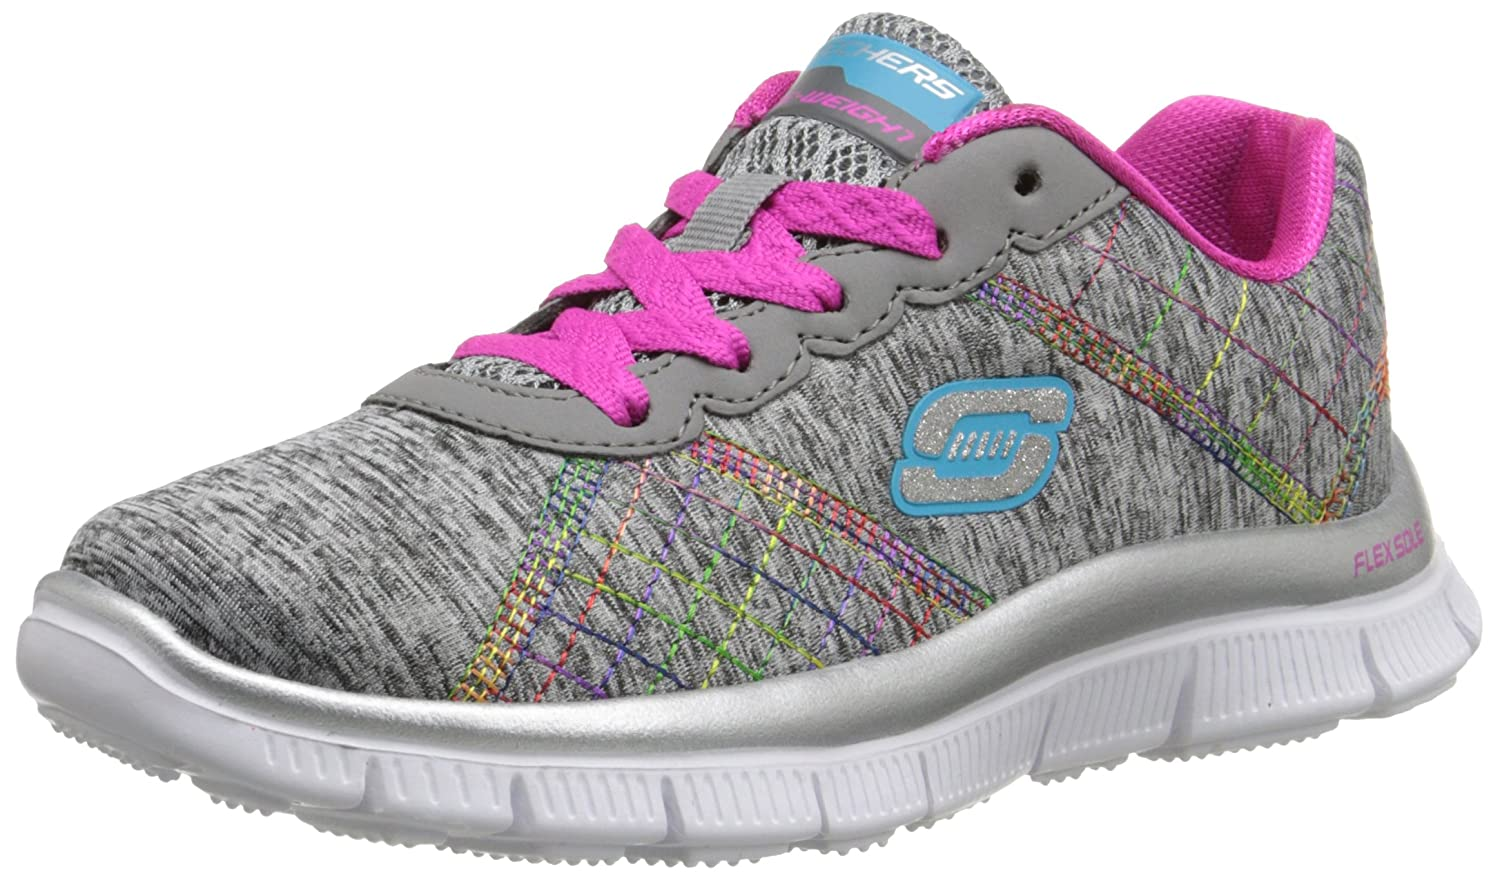 Skechers Kids Skech Appeal Fashion Sneaker (Little Kid/Big Kid) 81886L